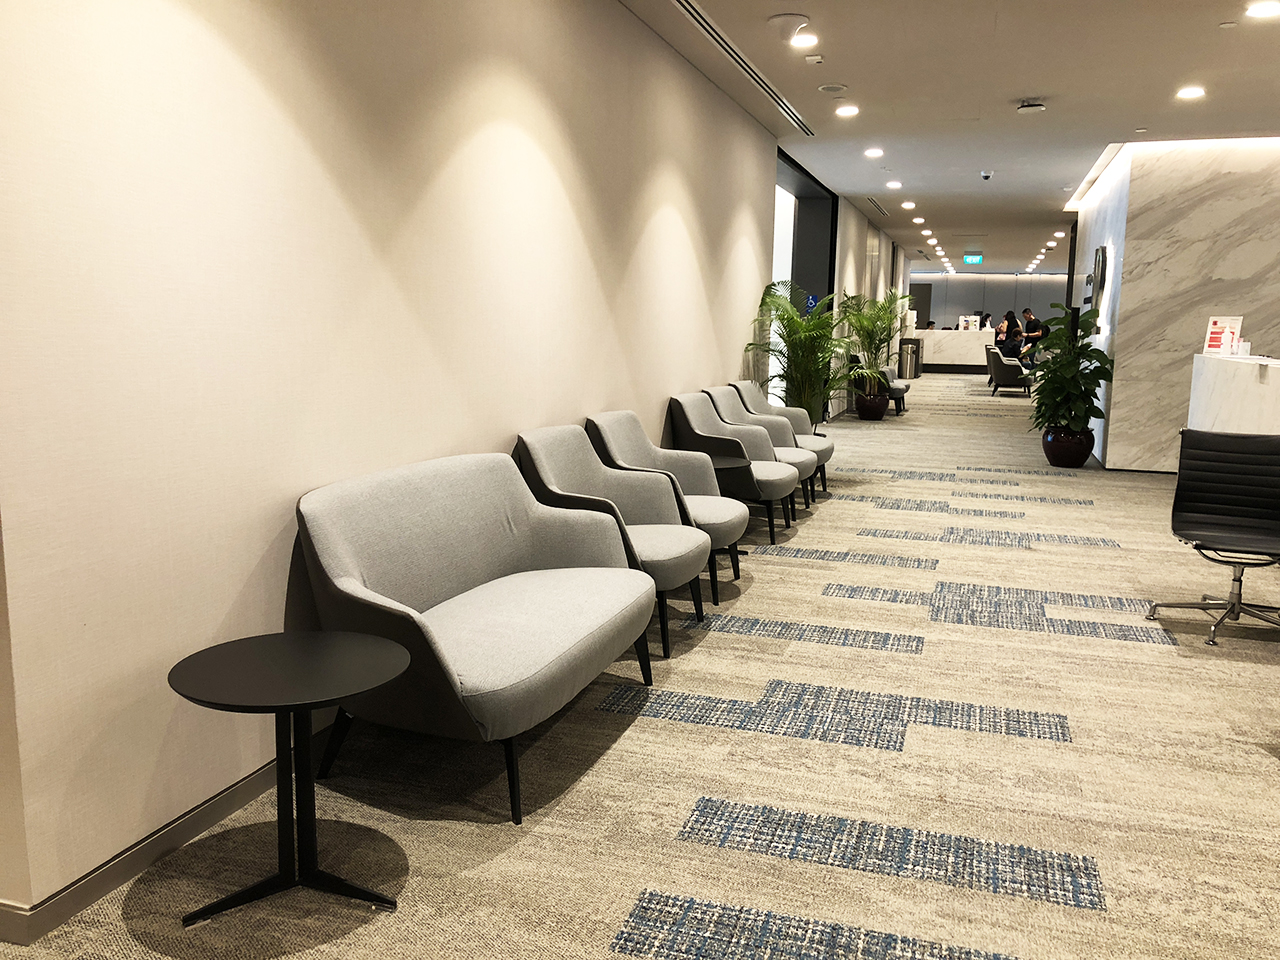 Raffles Hospital - Specialist Clinic | Product Seen: [Cullen 1–Seater Sofa, Cullen 2–Seater Sofa & Iris Coffee Table]